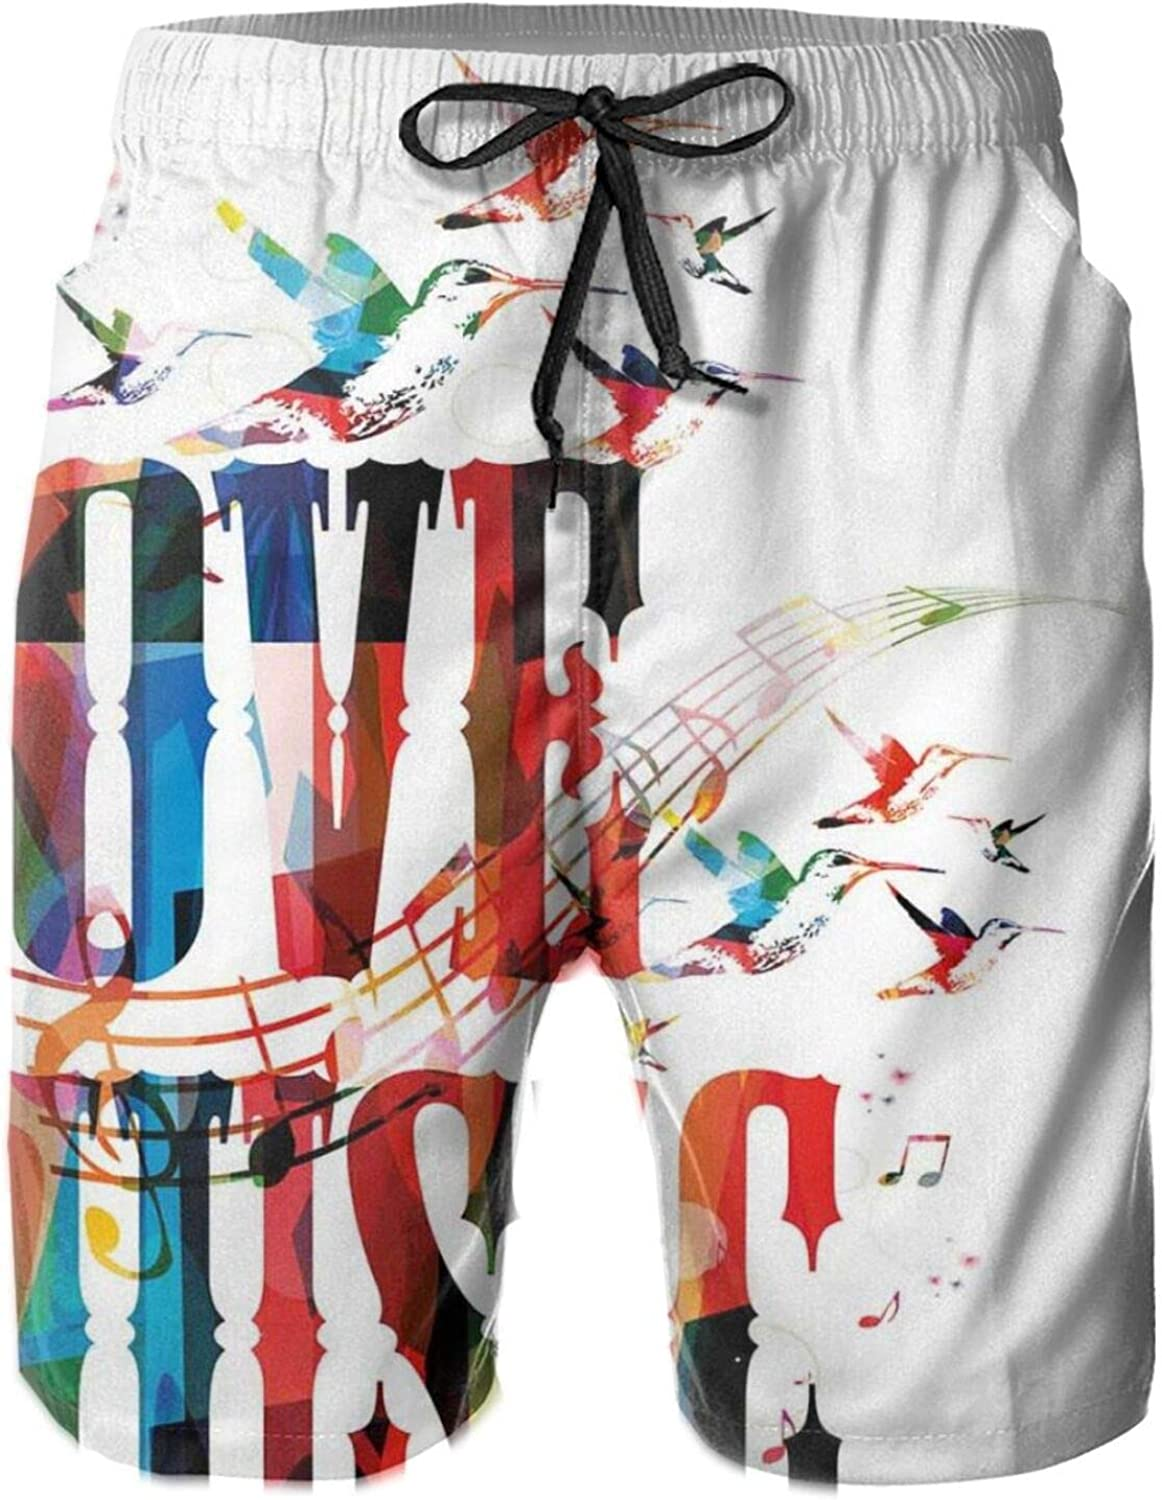 I Love Music Phrase in Grunge Effects and Birds Flying Soul Freedom Illustration Mens Swim Trucks Shorts with Mesh Lining,M